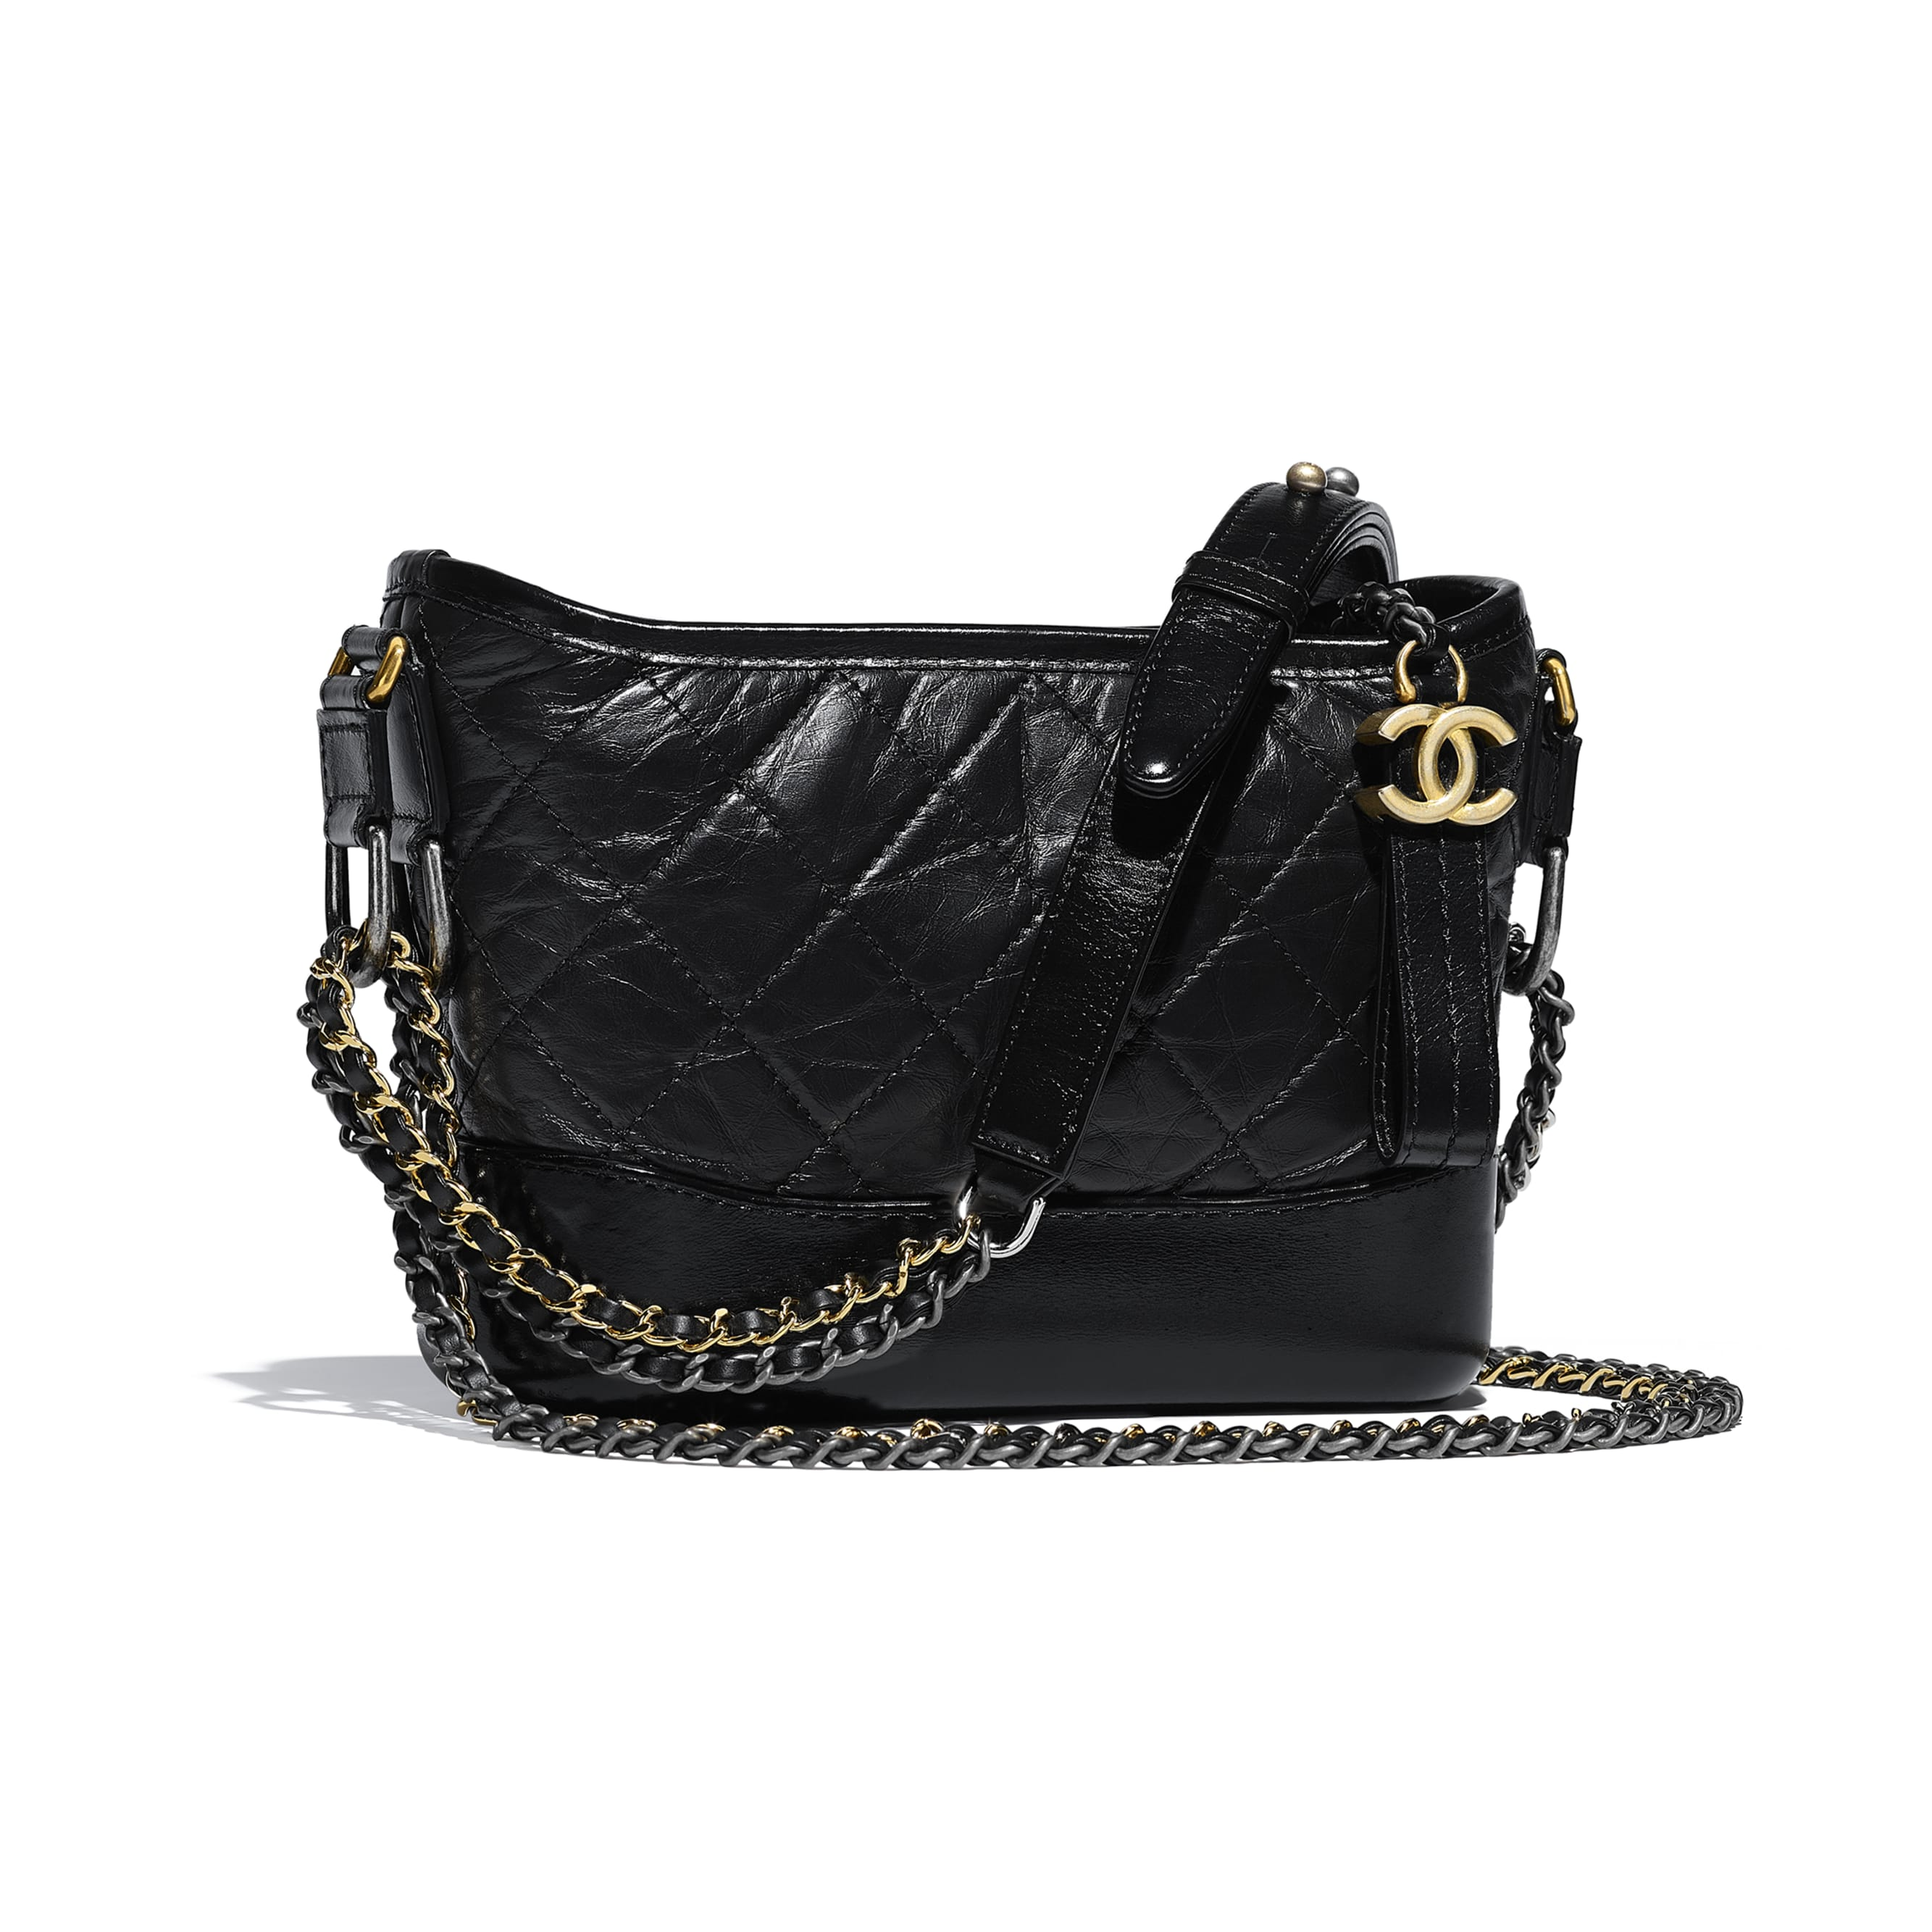 CHANEL'S GABRIELLE Small Hobo Bag - Black - Aged Calfskin, Smooth Calfskin, Gold-Tone, Silver-Tone & Ruthenium-Finish Metal - CHANEL - Other view - see standard sized version